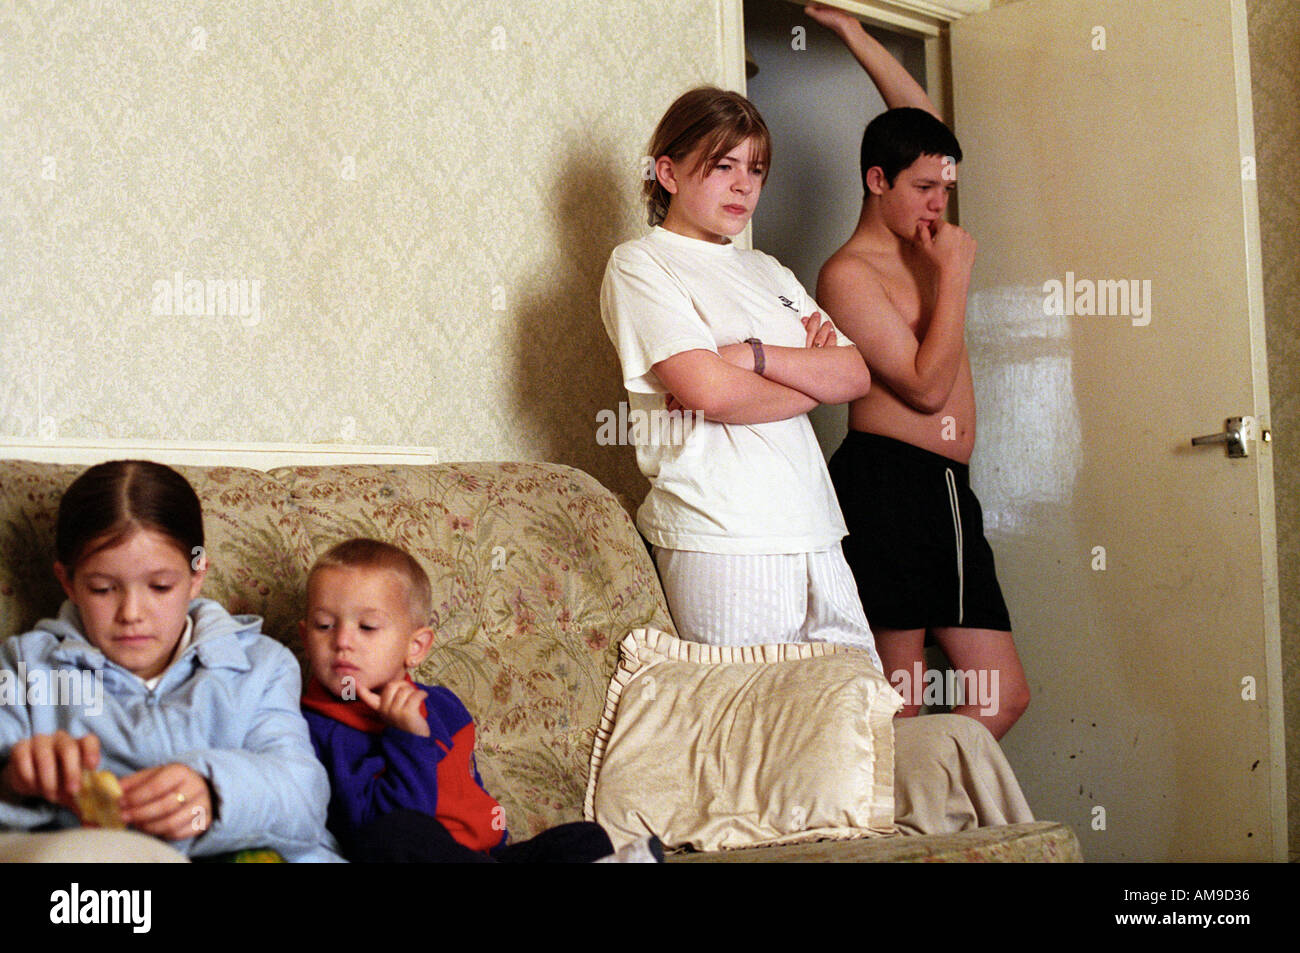 Four siblings of large family hanging around at home - Stock Image